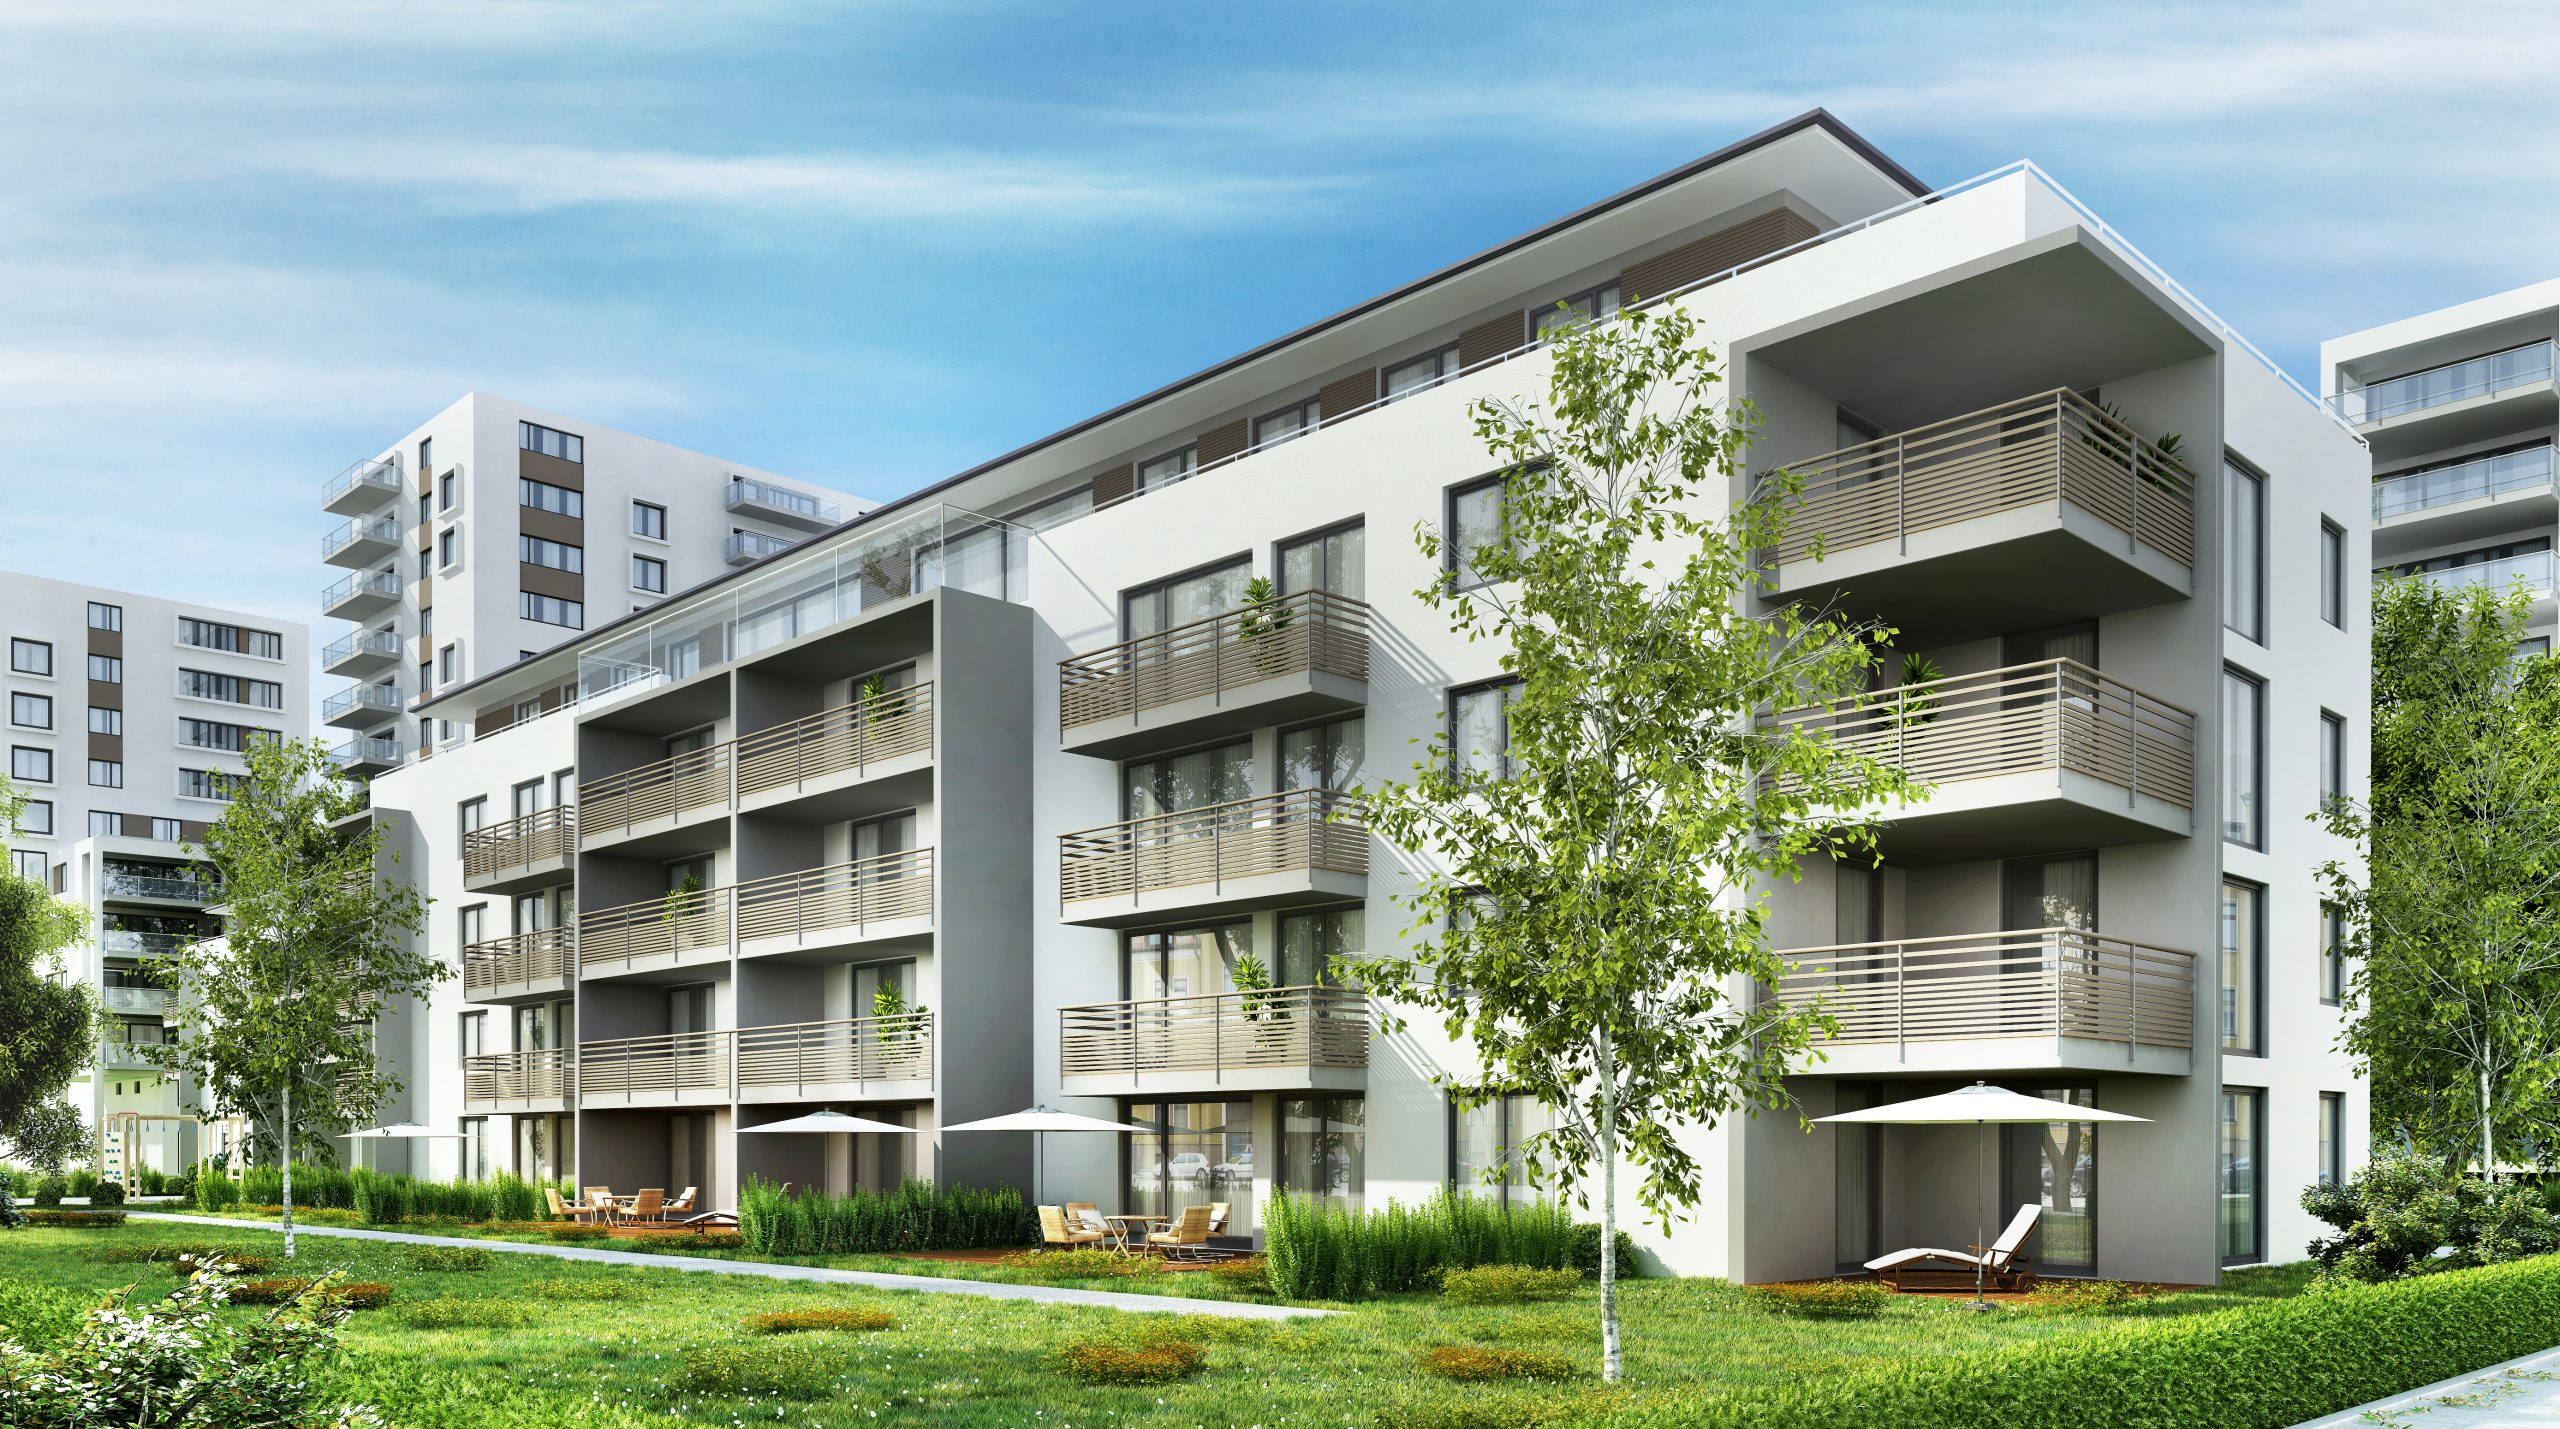 investing_in_apartment_buildings | Passive Income M.D.